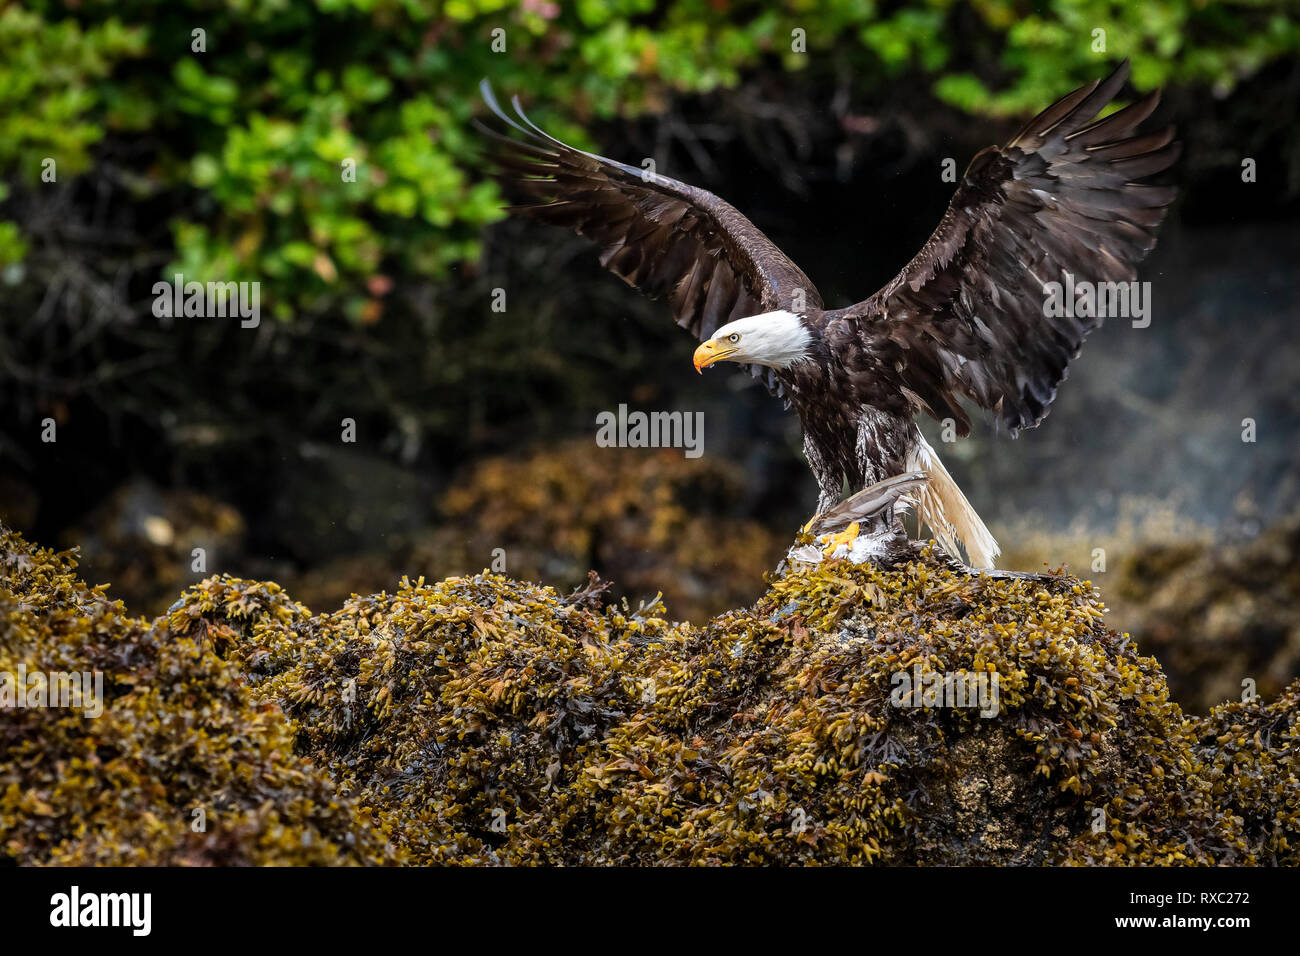 Adult bald eagle (Haliaeetus leucocephalus) with spread wings and a freshly caught seagull in its talons on seaweed during low tide in the Broughton Archipelago, First Nations Territory, British Columbia, Canada. Stock Photo